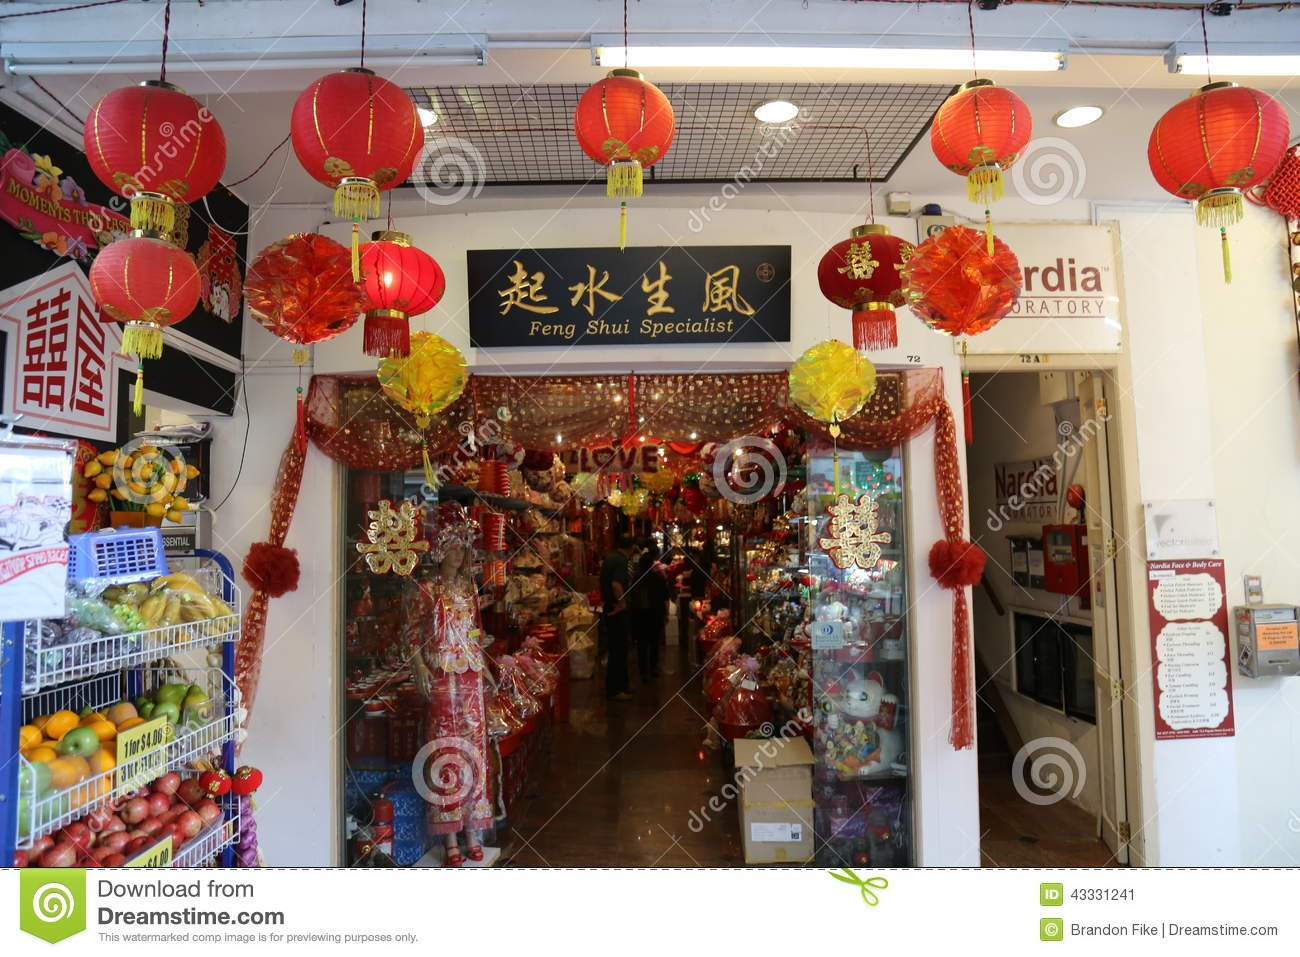 Welcome to our Feng Shui store – Online first Feng Shui mall We have revamped our feng shui shop and have changed a lot so please take a good look around at all the new feng shui products and Chinese good luck symbols we have to offer.